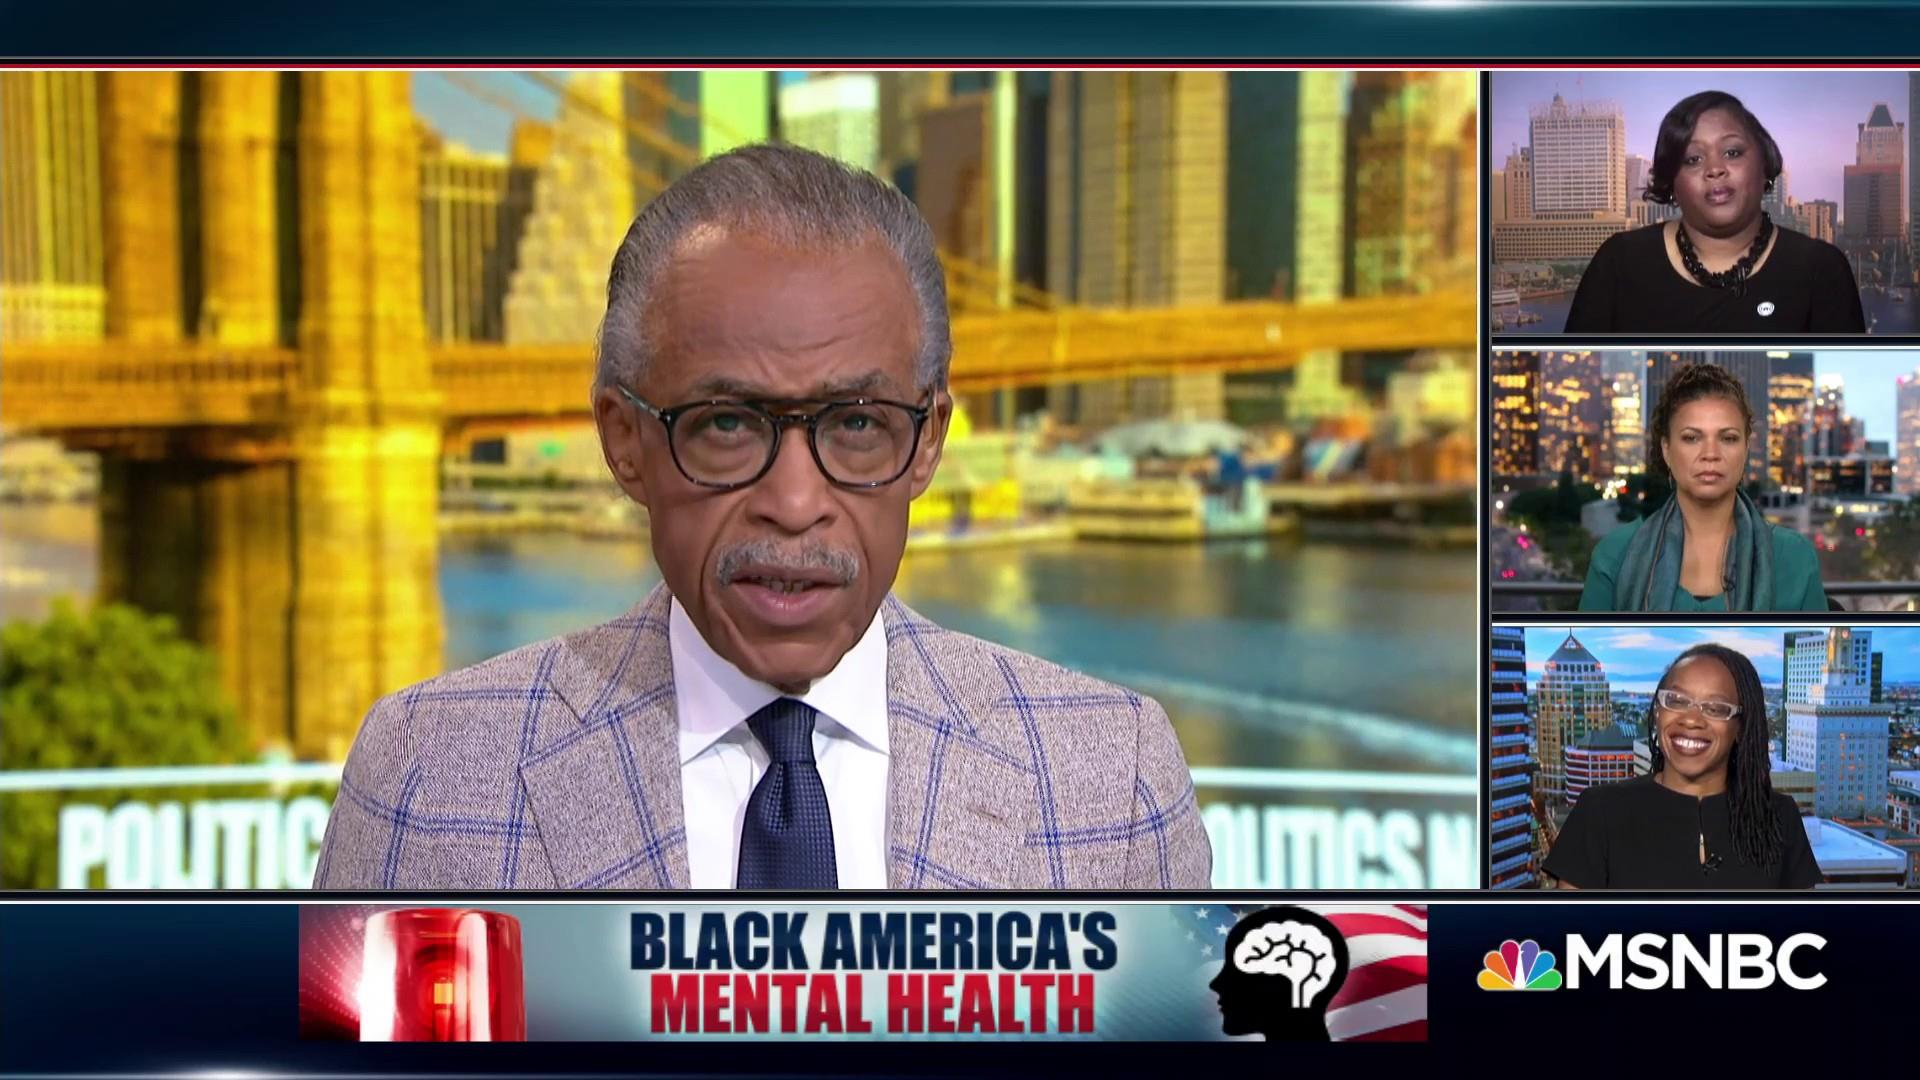 Black America's Mental Health